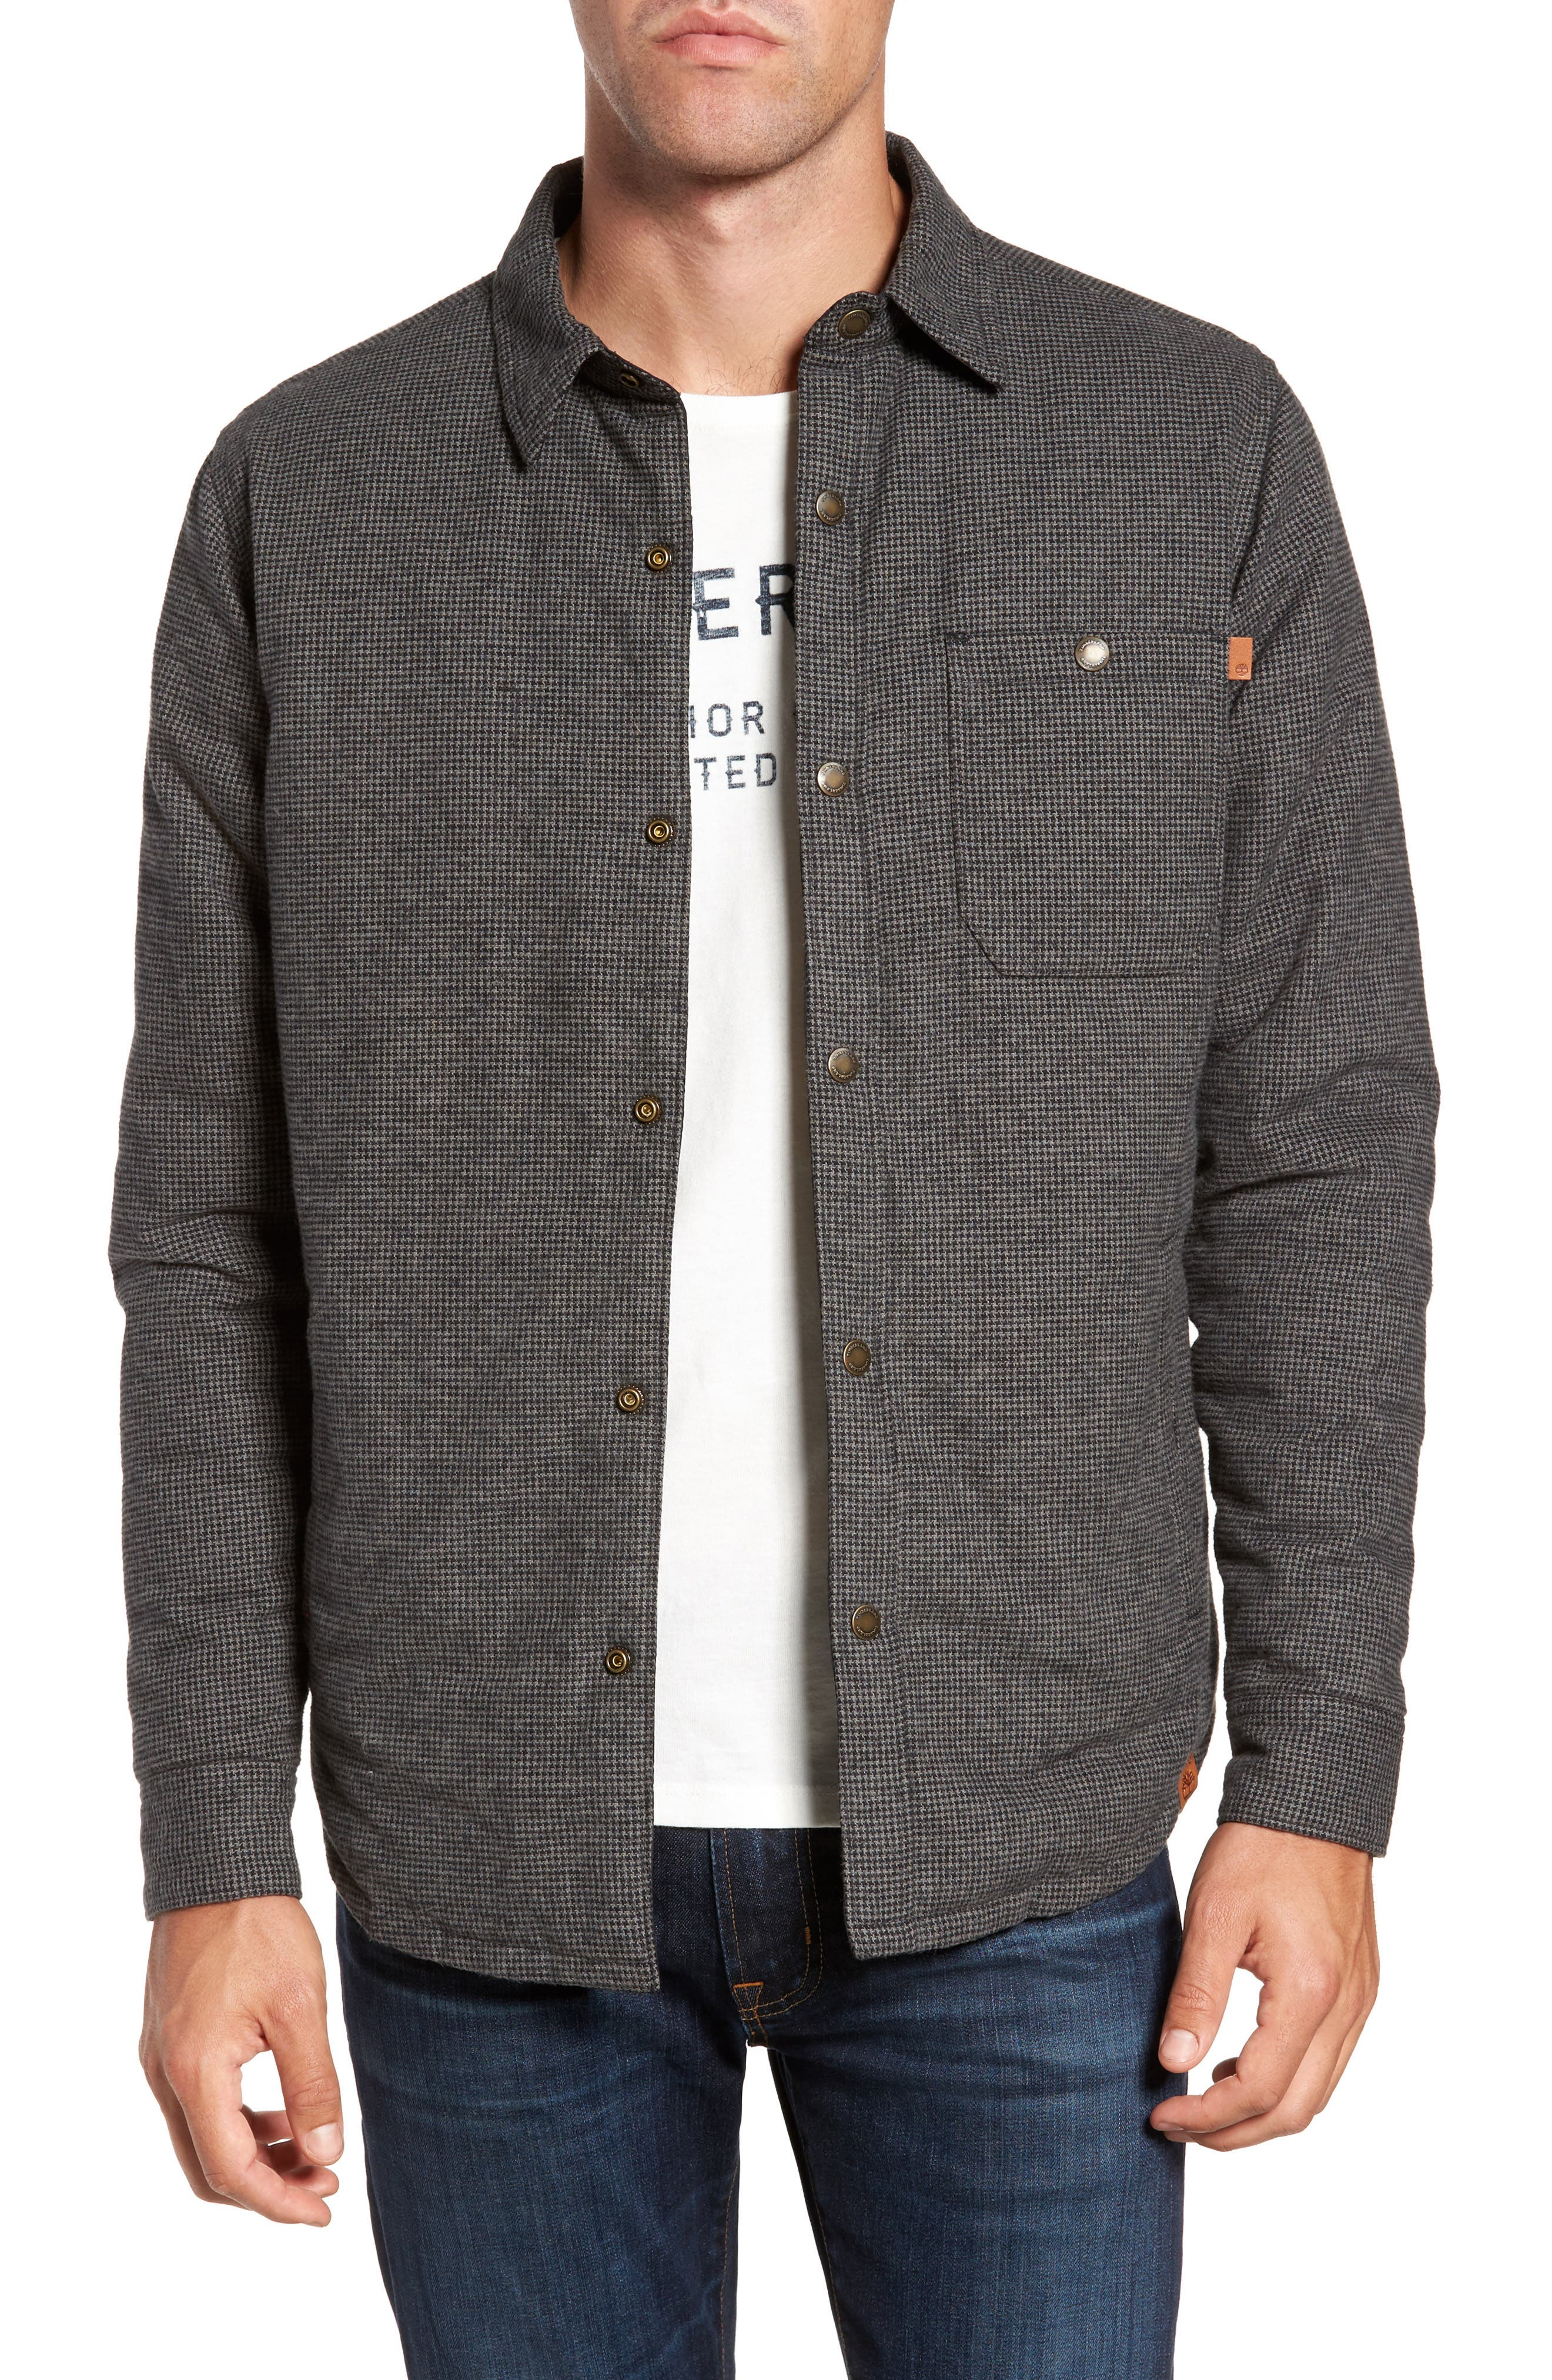 Timberland Gunstock River Reversible Down Shirt Jacket